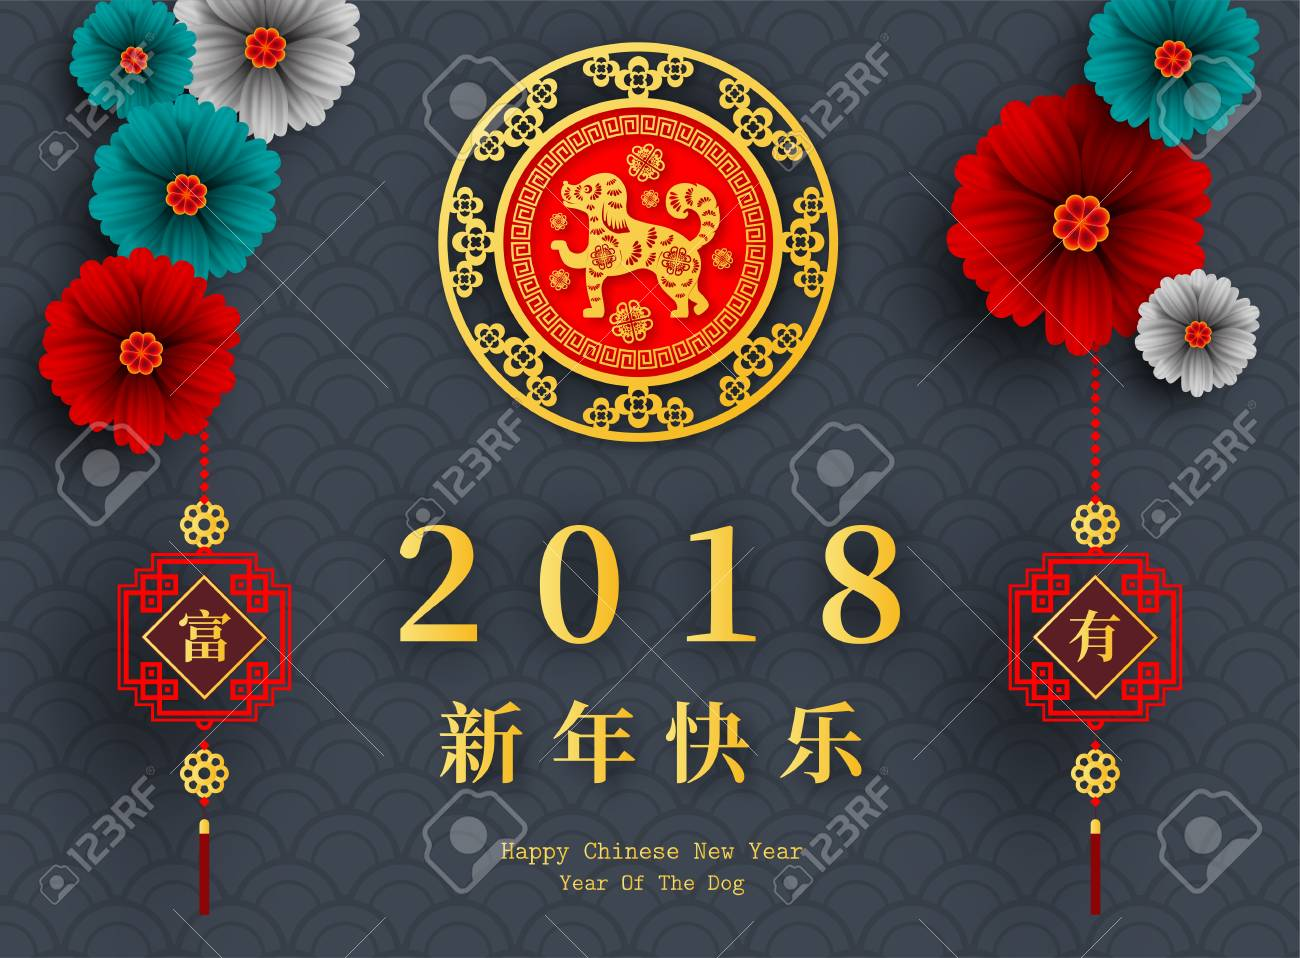 2018 Chinese New Year Paper Cutting Year of Dog Vector Design for your greetings card, flyers, invitation, posters, brochure, banners, calendar - 88367561